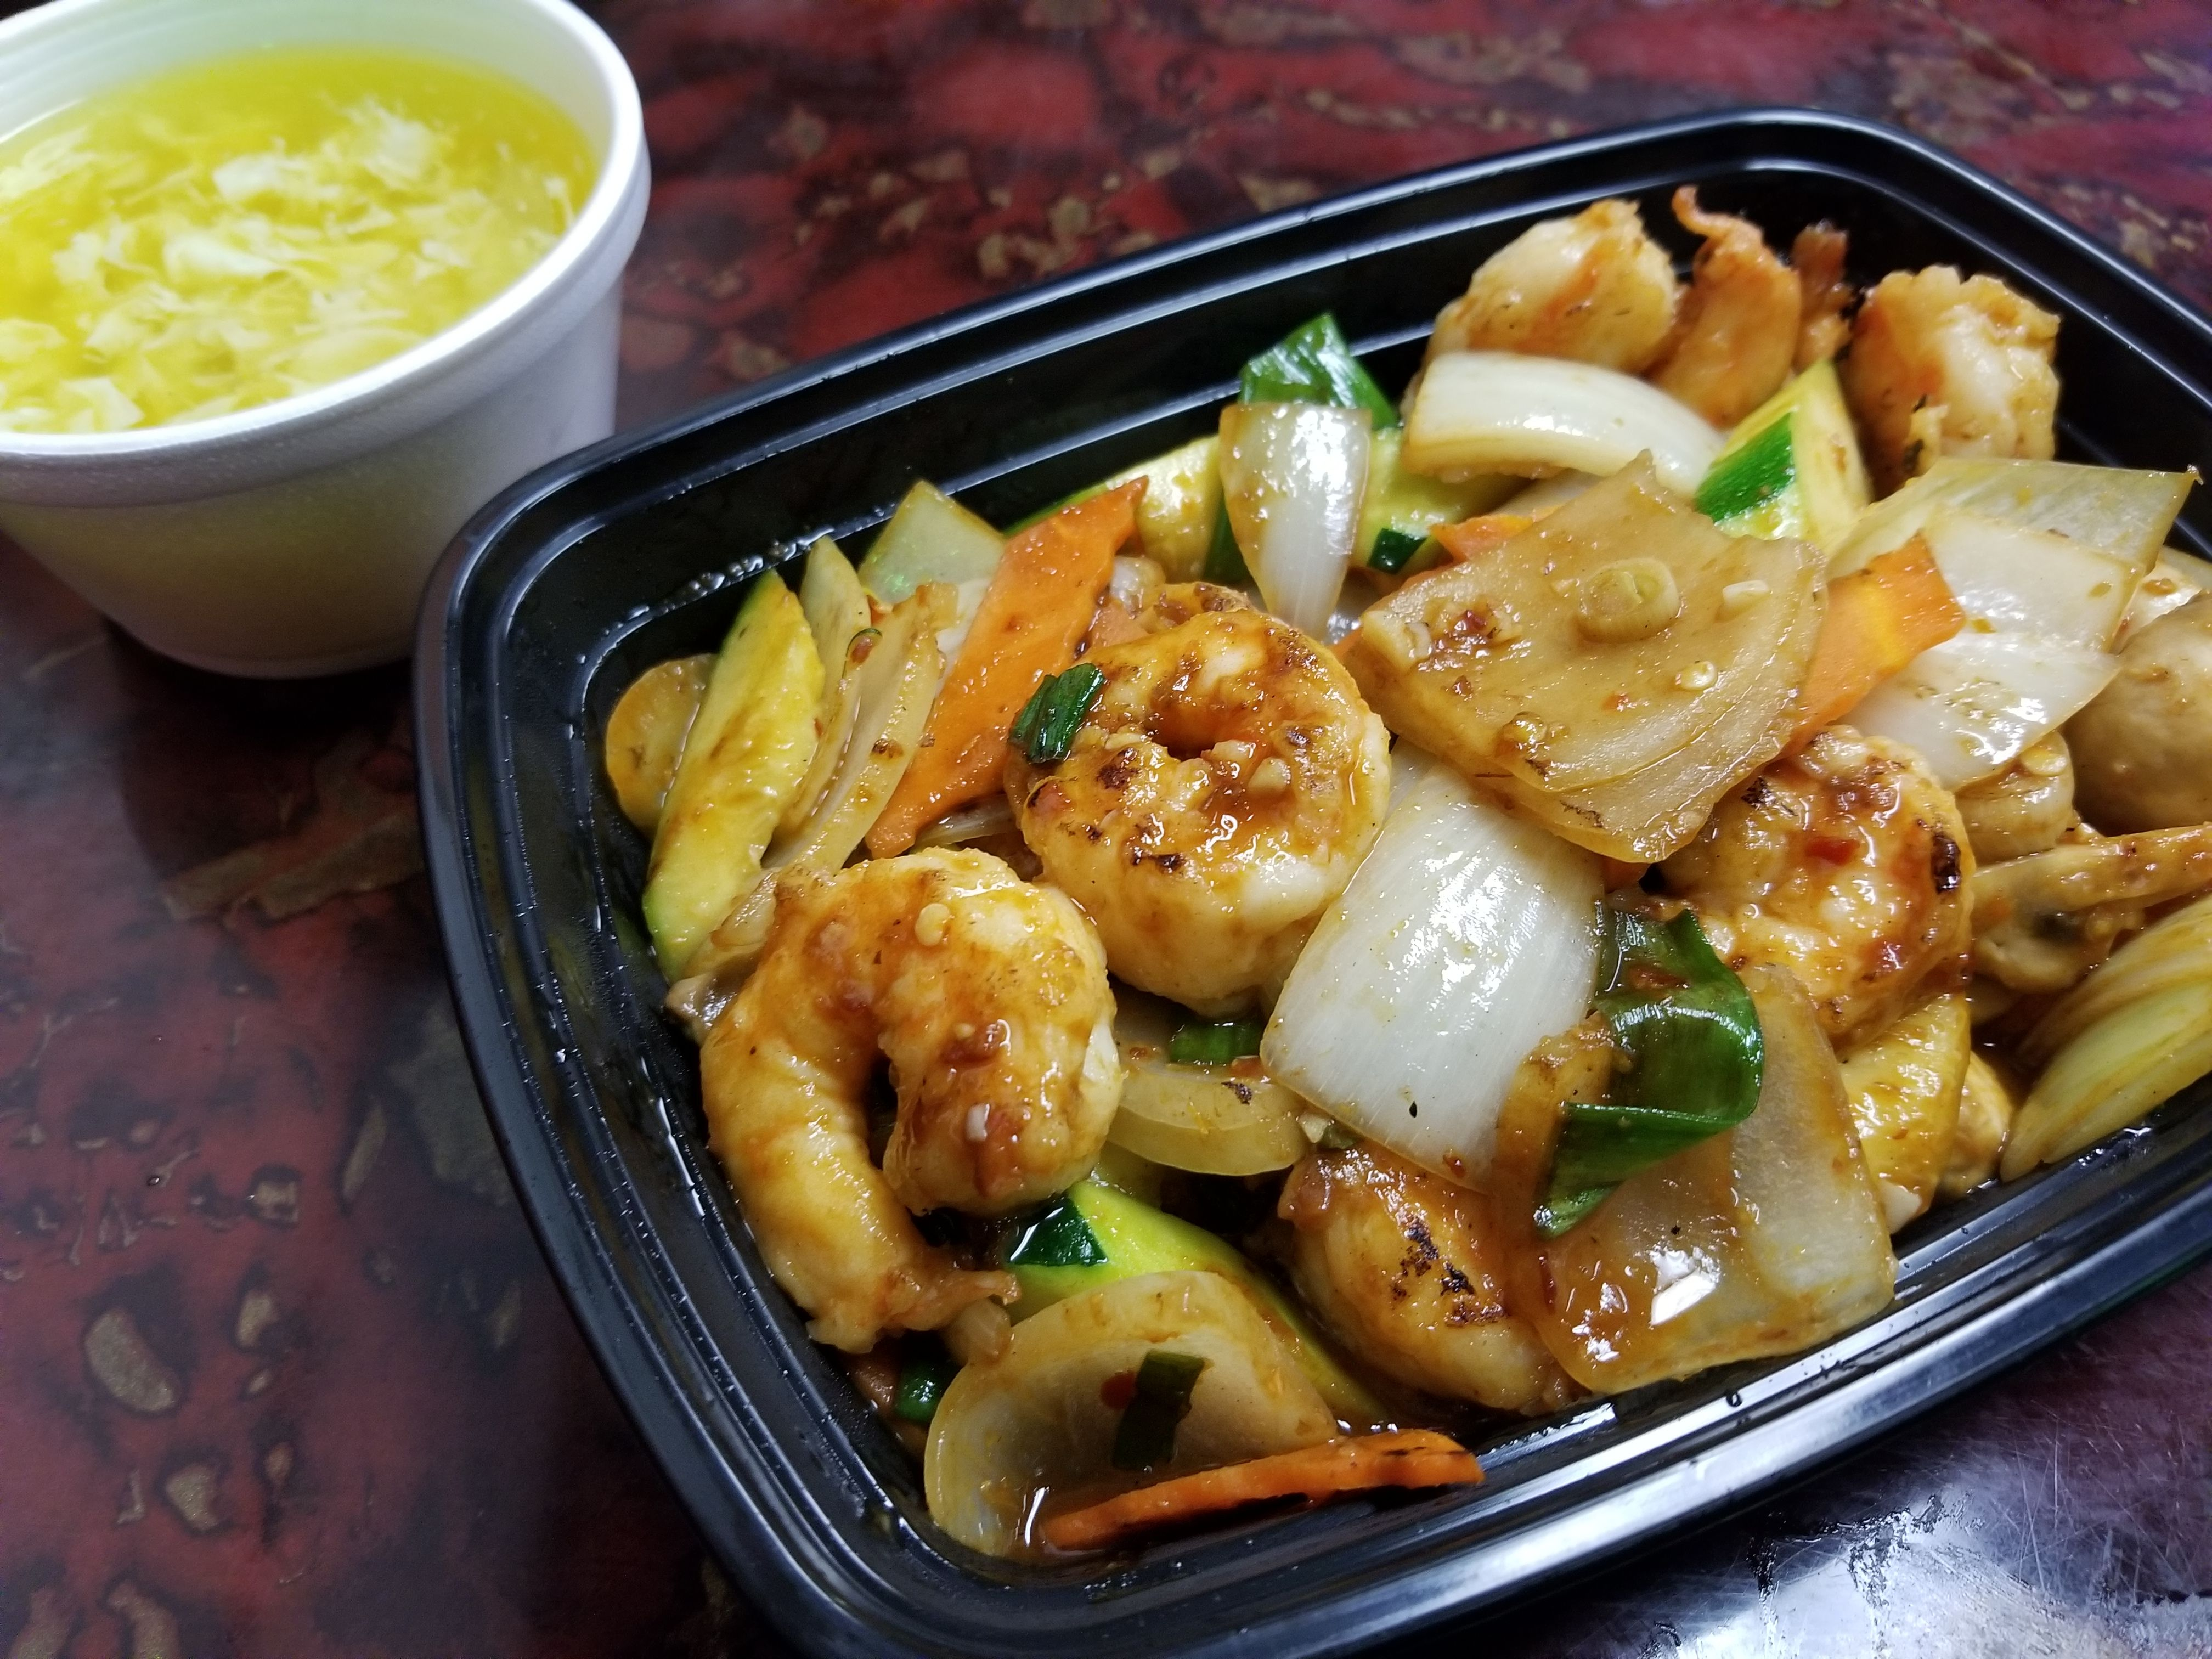 Mongolian Shrimp Includes Large Shrimp Onions Zucchini Scallions And Carrots With A Side Of Egg Drop Soup Featured O Food Chinese Restaurant Egg Drop Soup